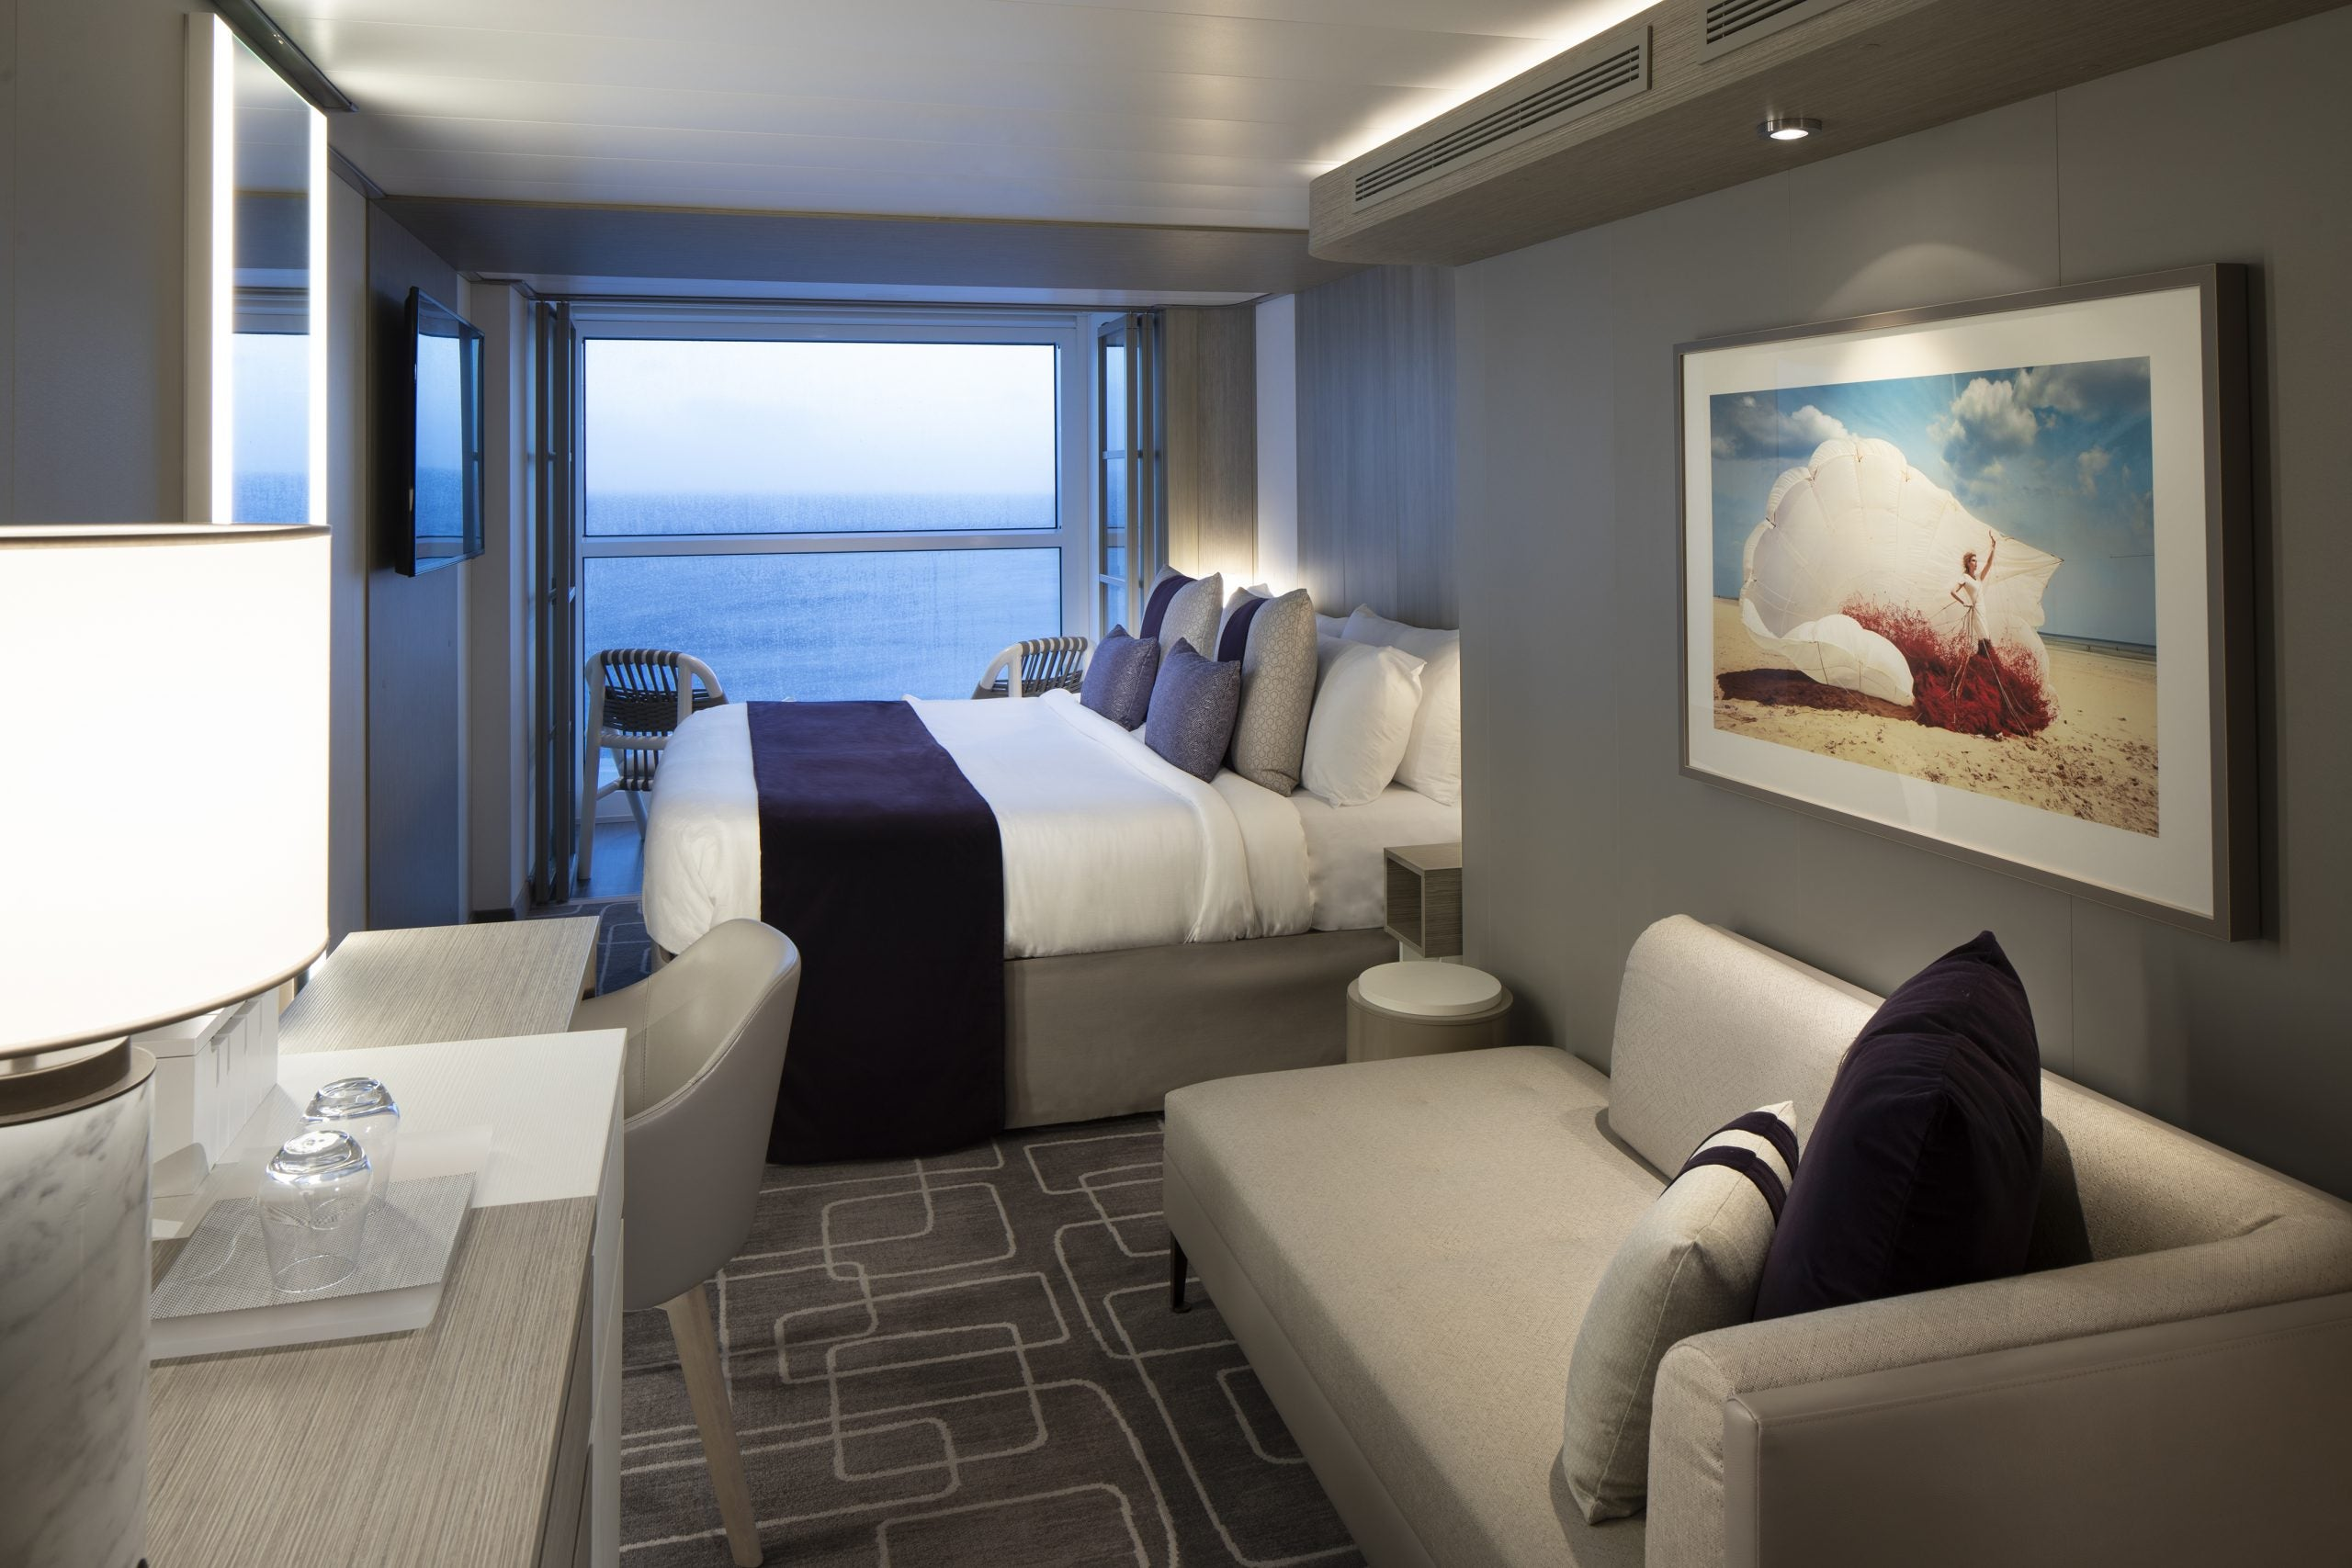 5 reasons to turn down a cruise ship cabin upgrade